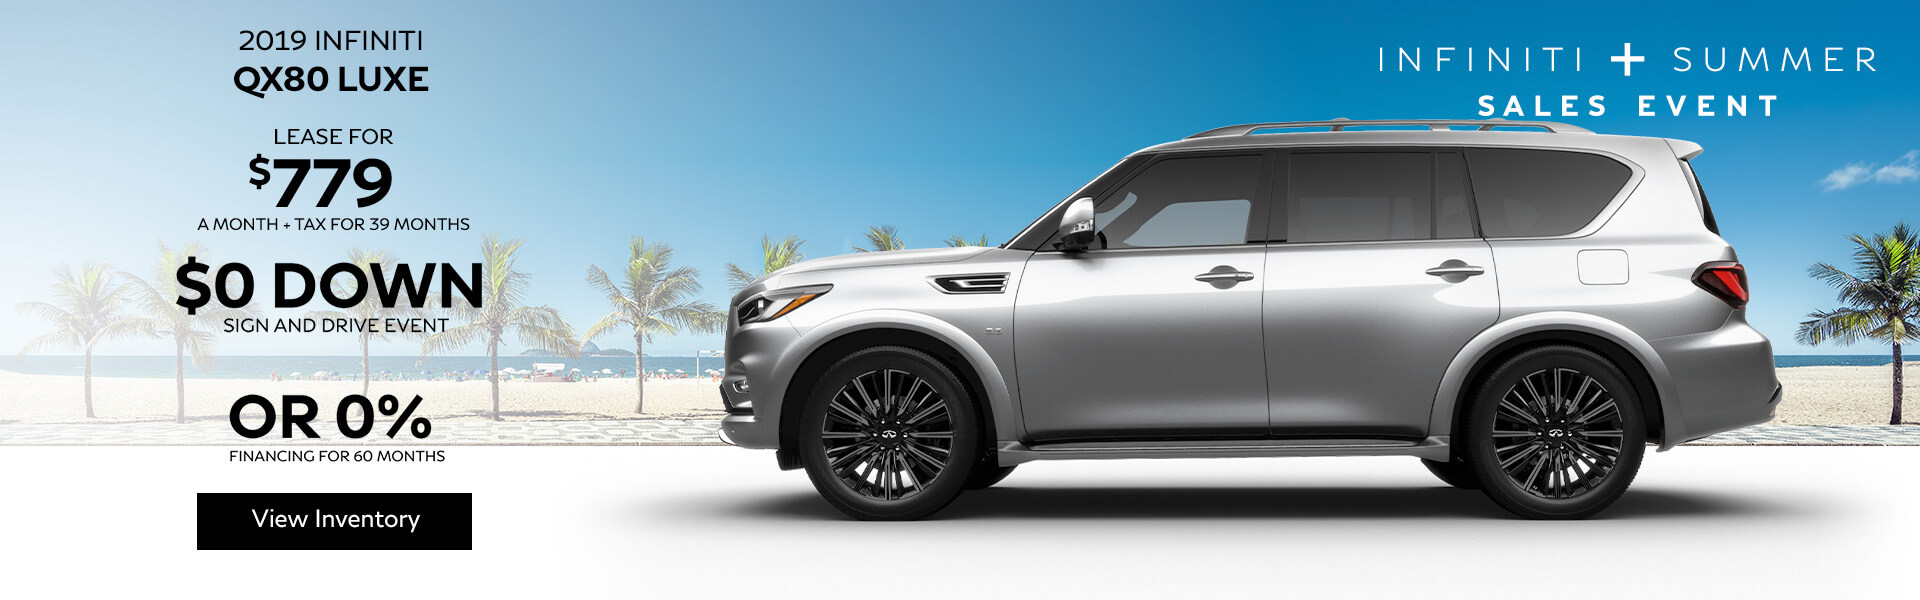 QX80 LUXE - Lease for $779